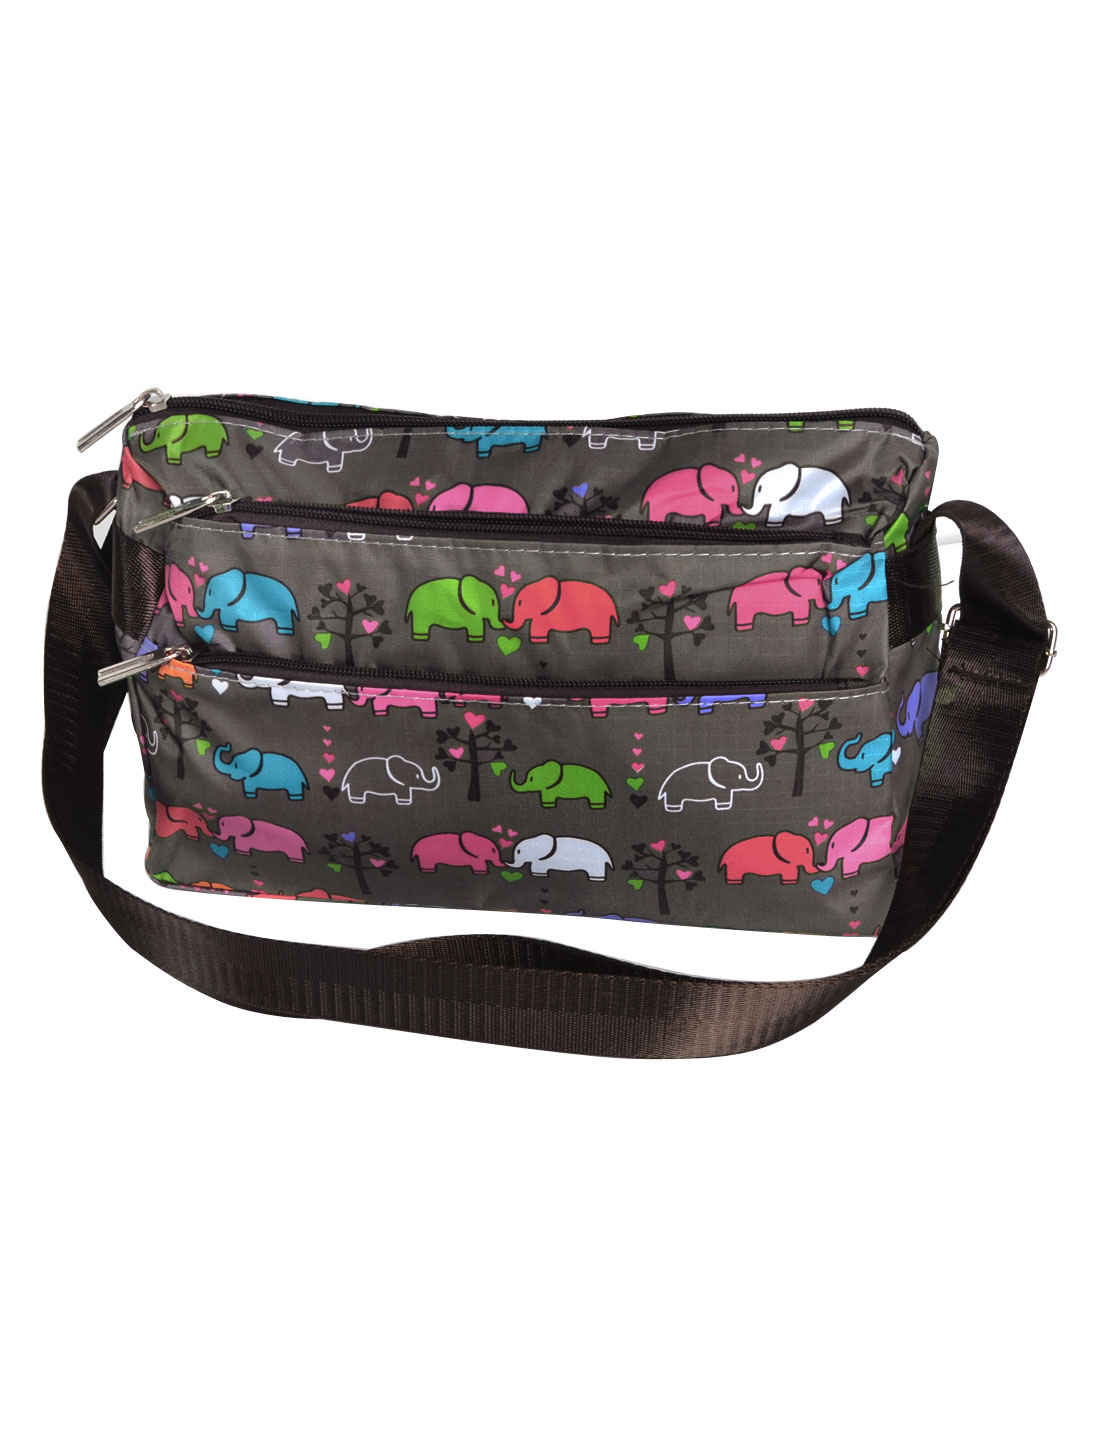 Lady Elephant Pattern 3 Compartment Zipper Closure Nylon Shoulder Bag Handbag